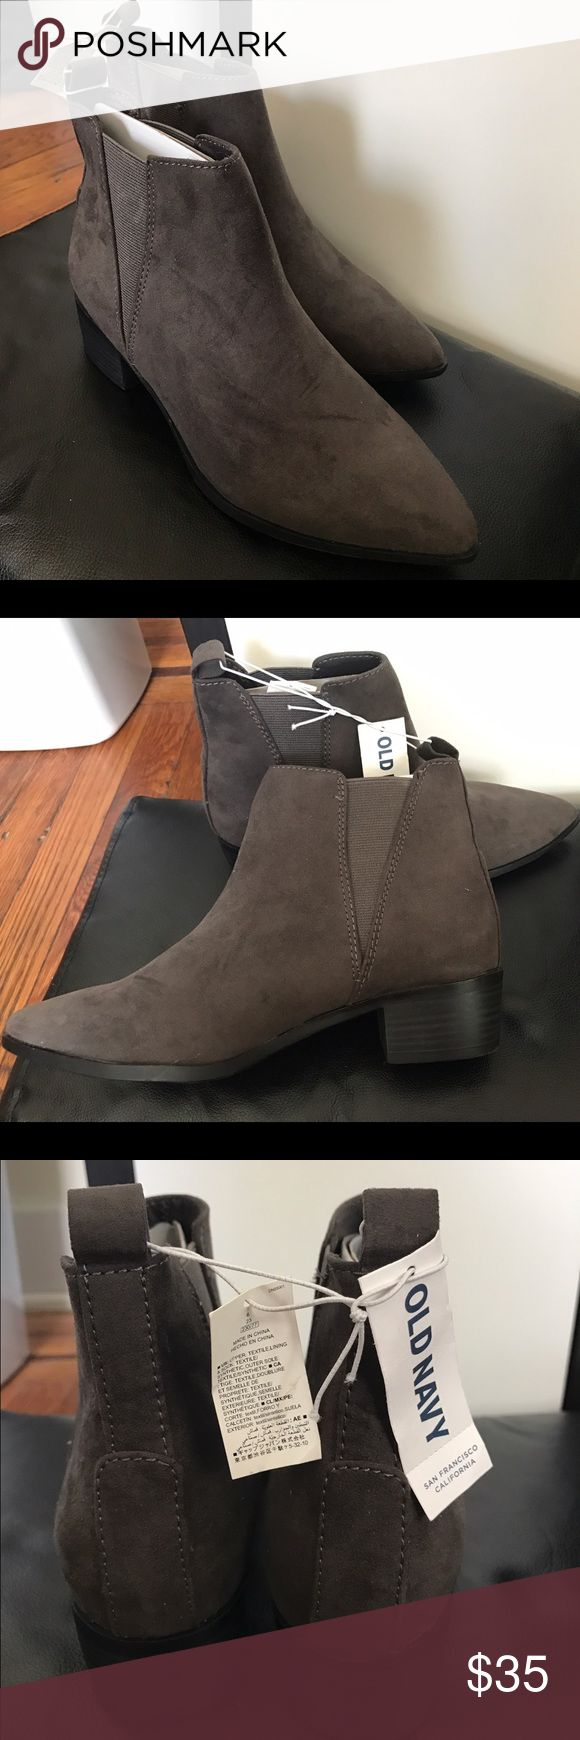 Old Navy Ankle Booties Grey old navy ankle booties! Brand new with tags! Old Navy Shoes Ankle Boots & Booties